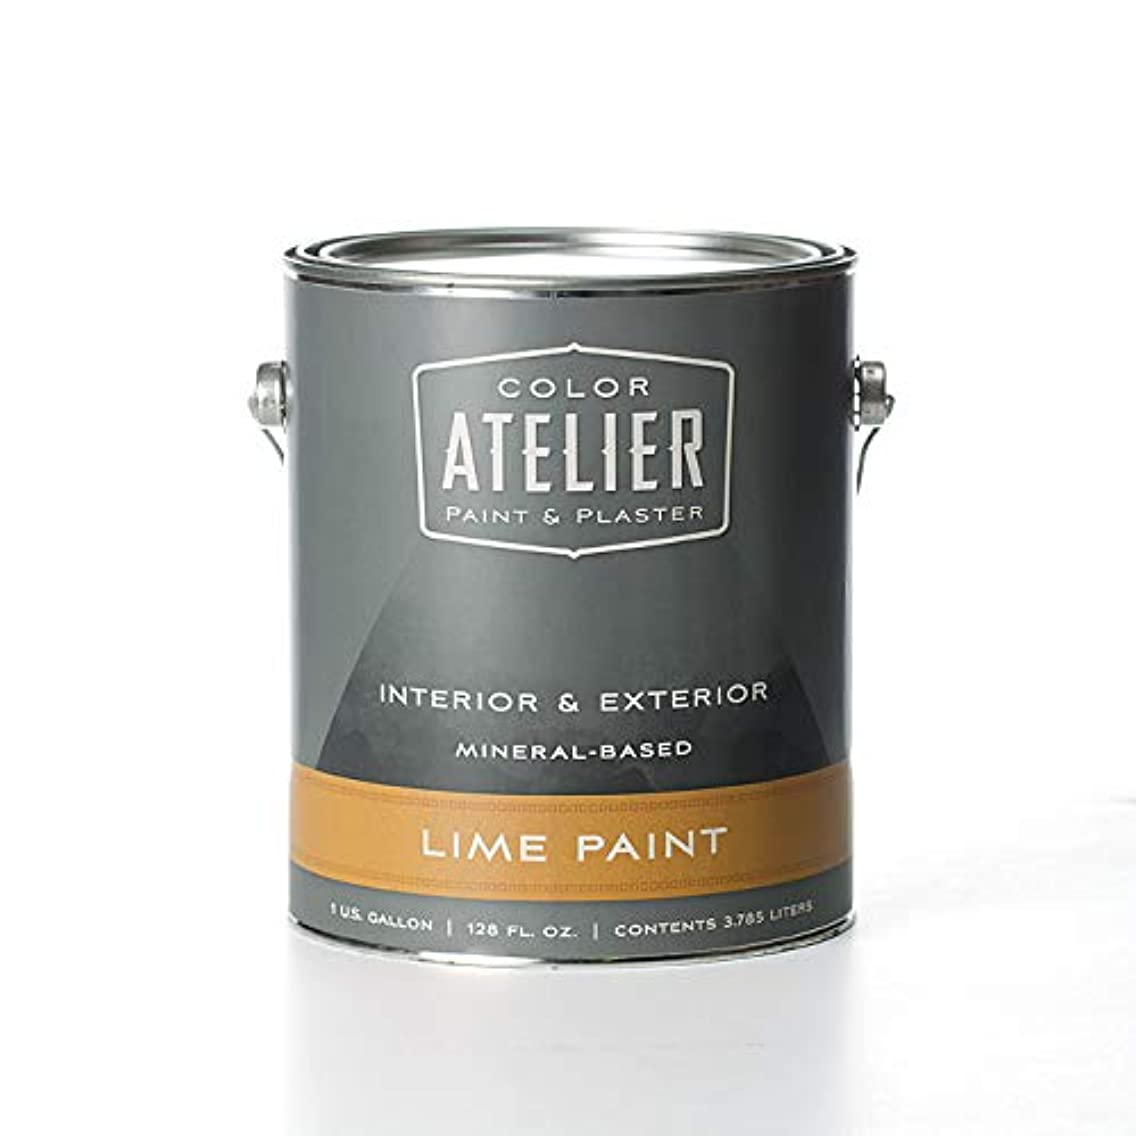 Color Atelier Lime Paint, Lime Wash (Natural)